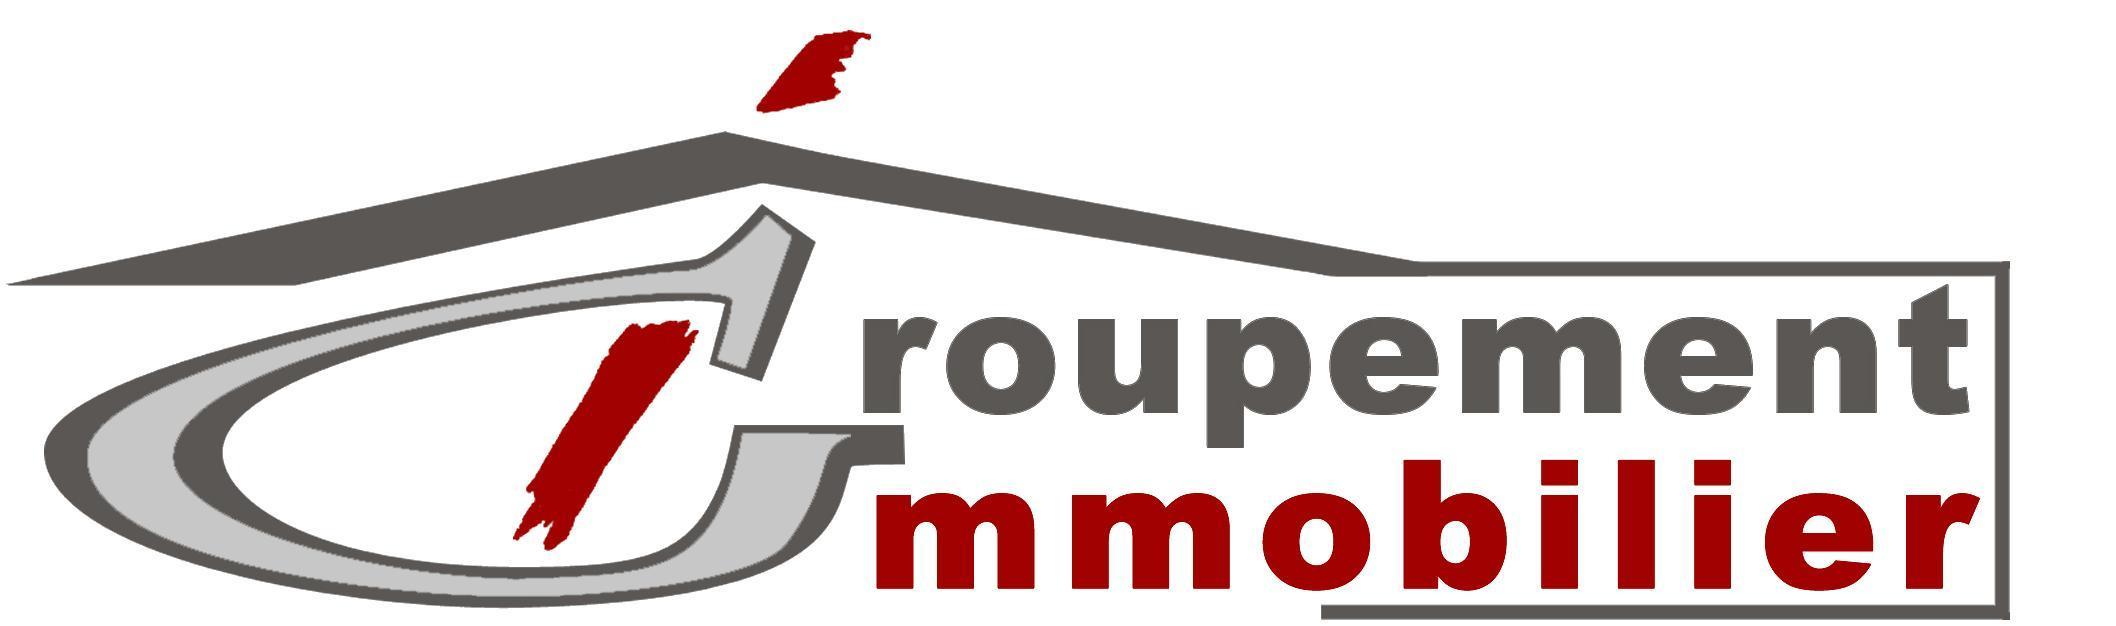 Groupement Immobilier agence immobilière Montpellier (34070)